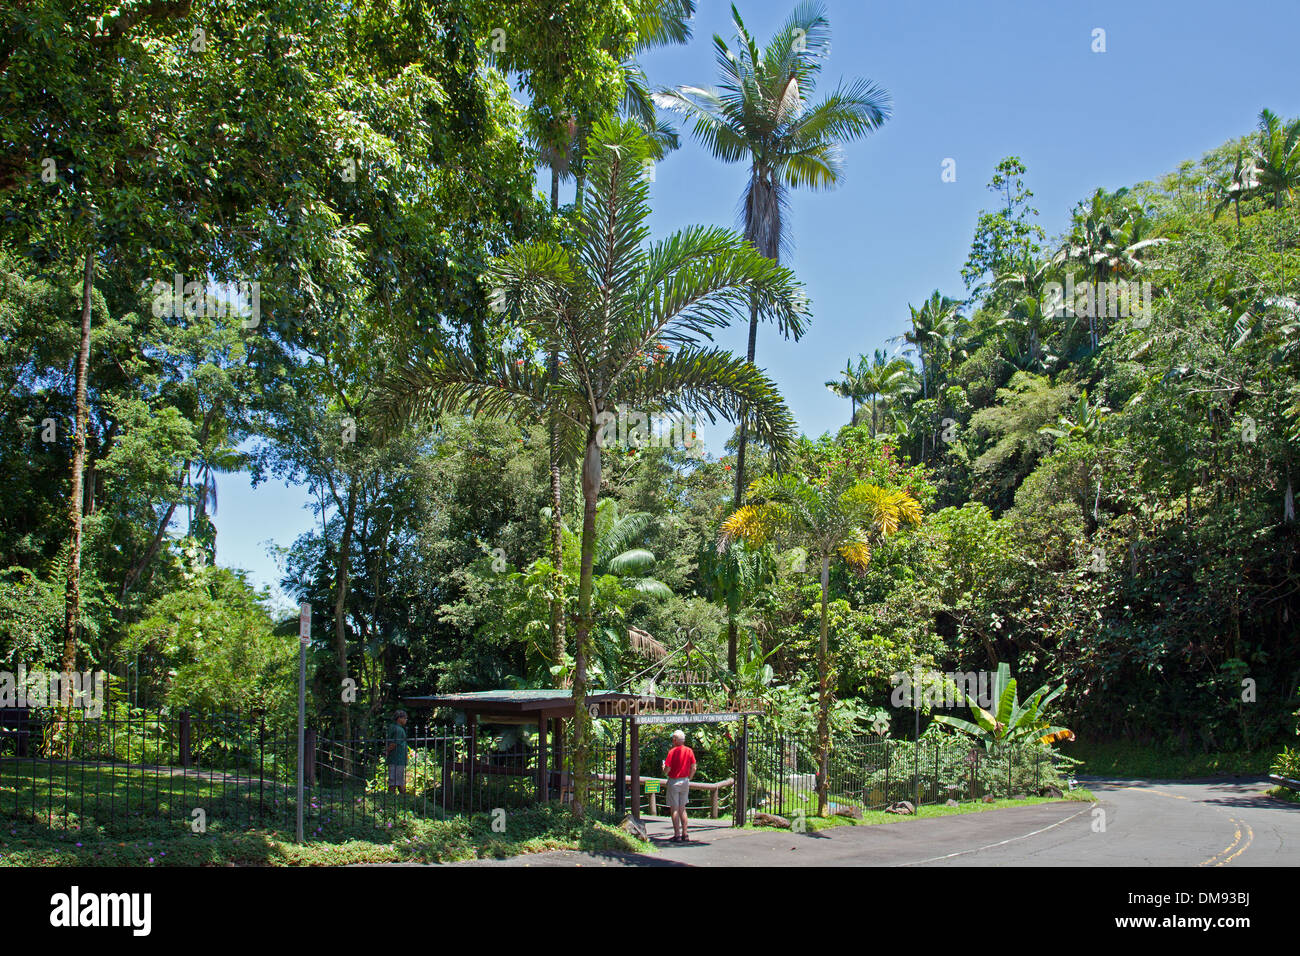 Entrance To The Hawaii Tropical Botanical Garden, On Scenic Loop Off  Highway 19, North Of Hilo